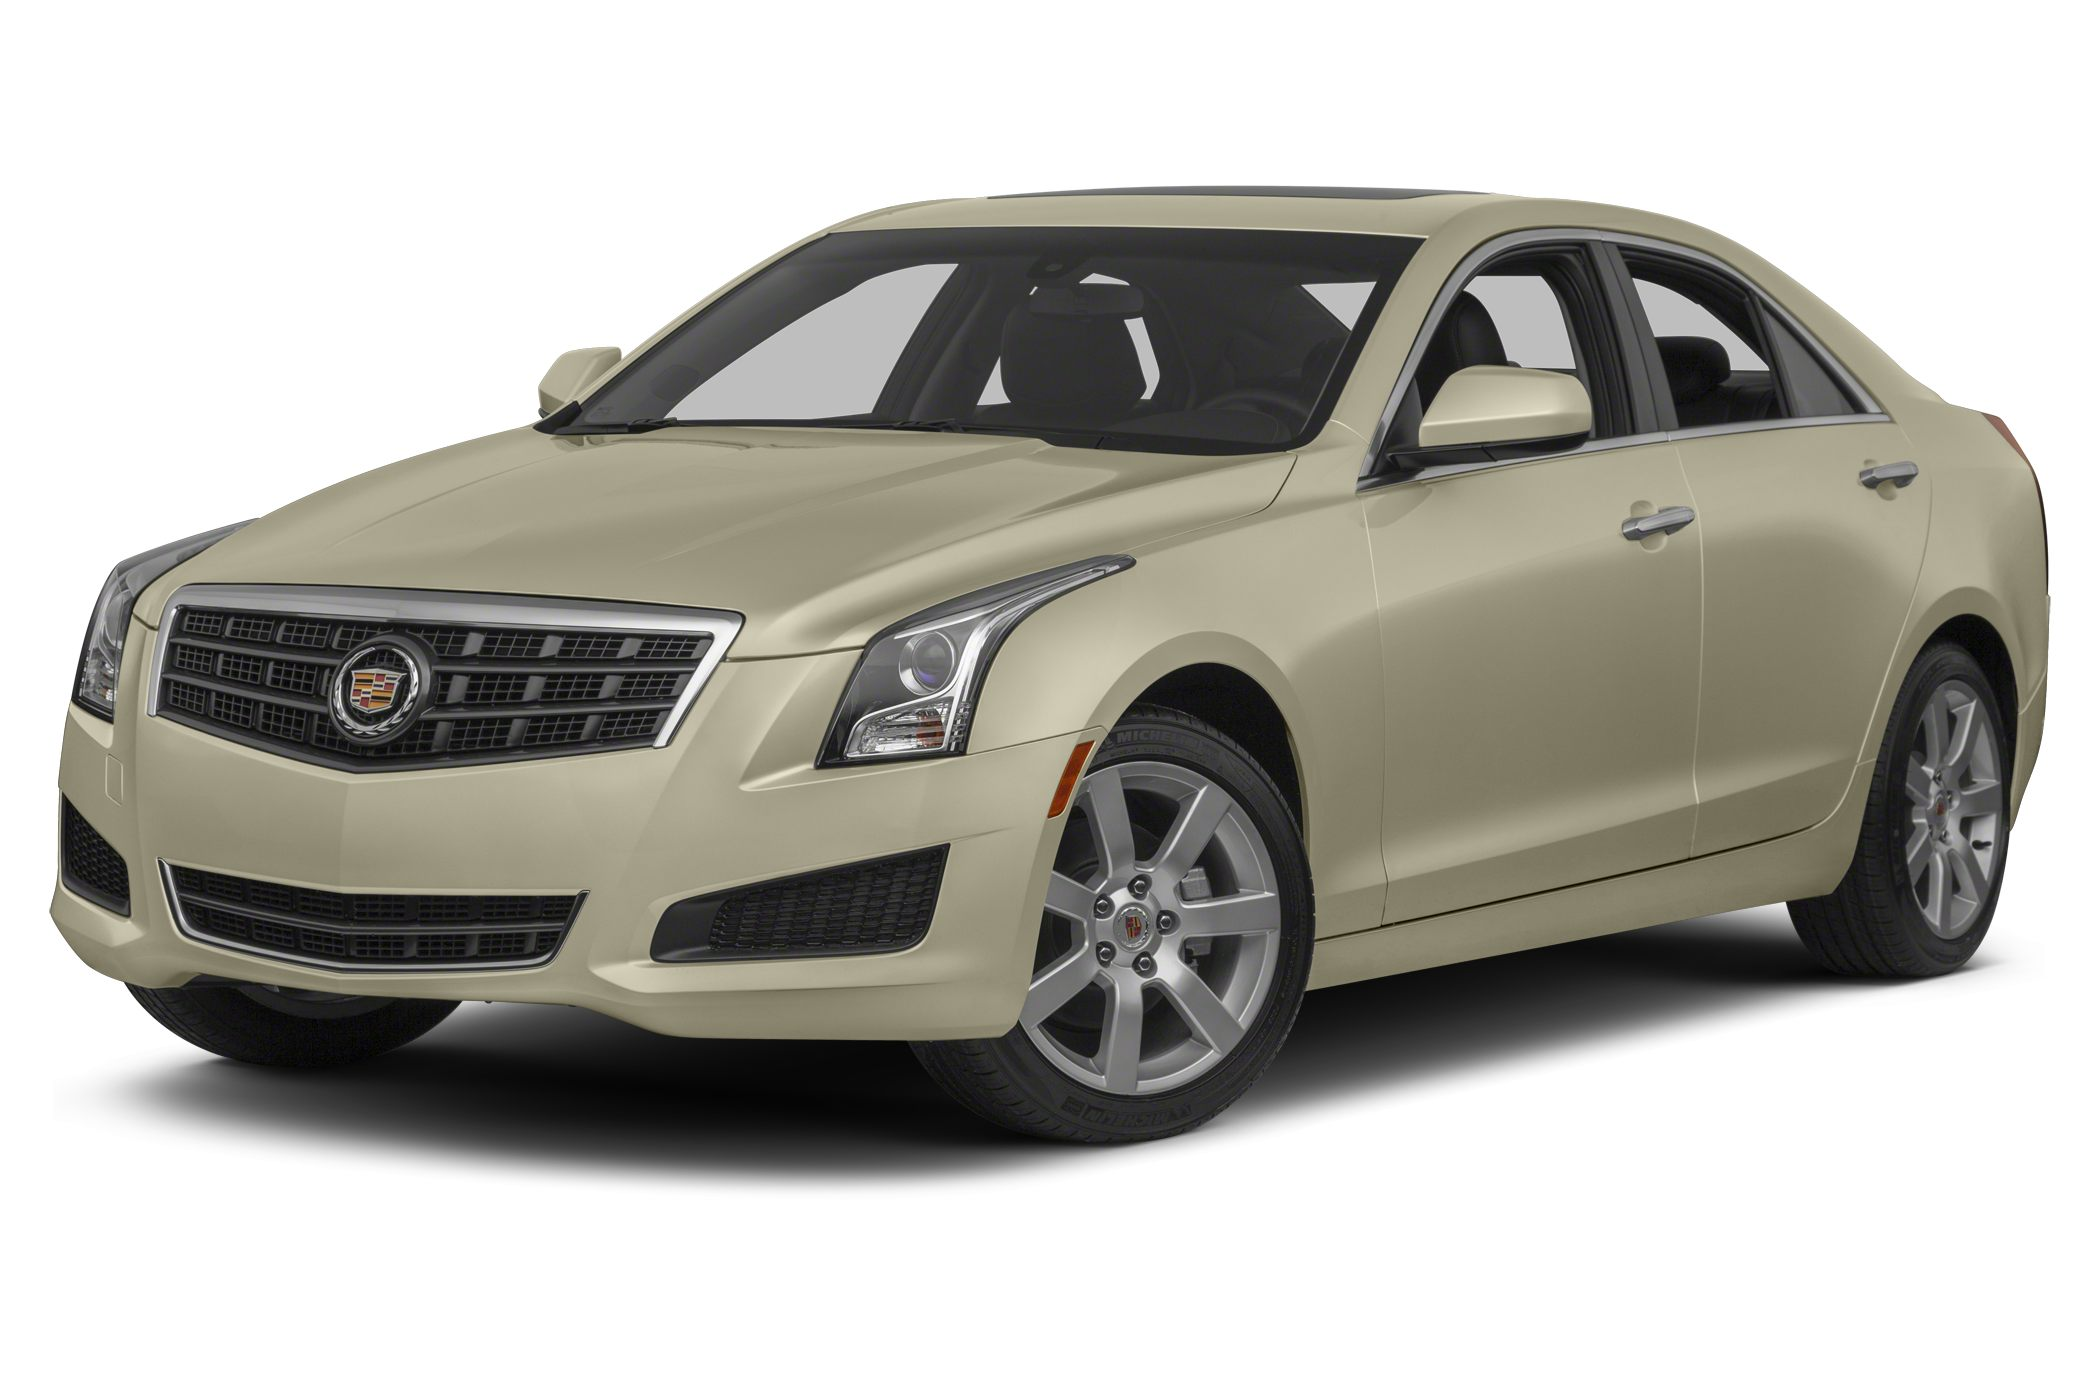 2014 Cadillac ATS 2 5L 4dr Rear wheel Drive Sedan Safety Features